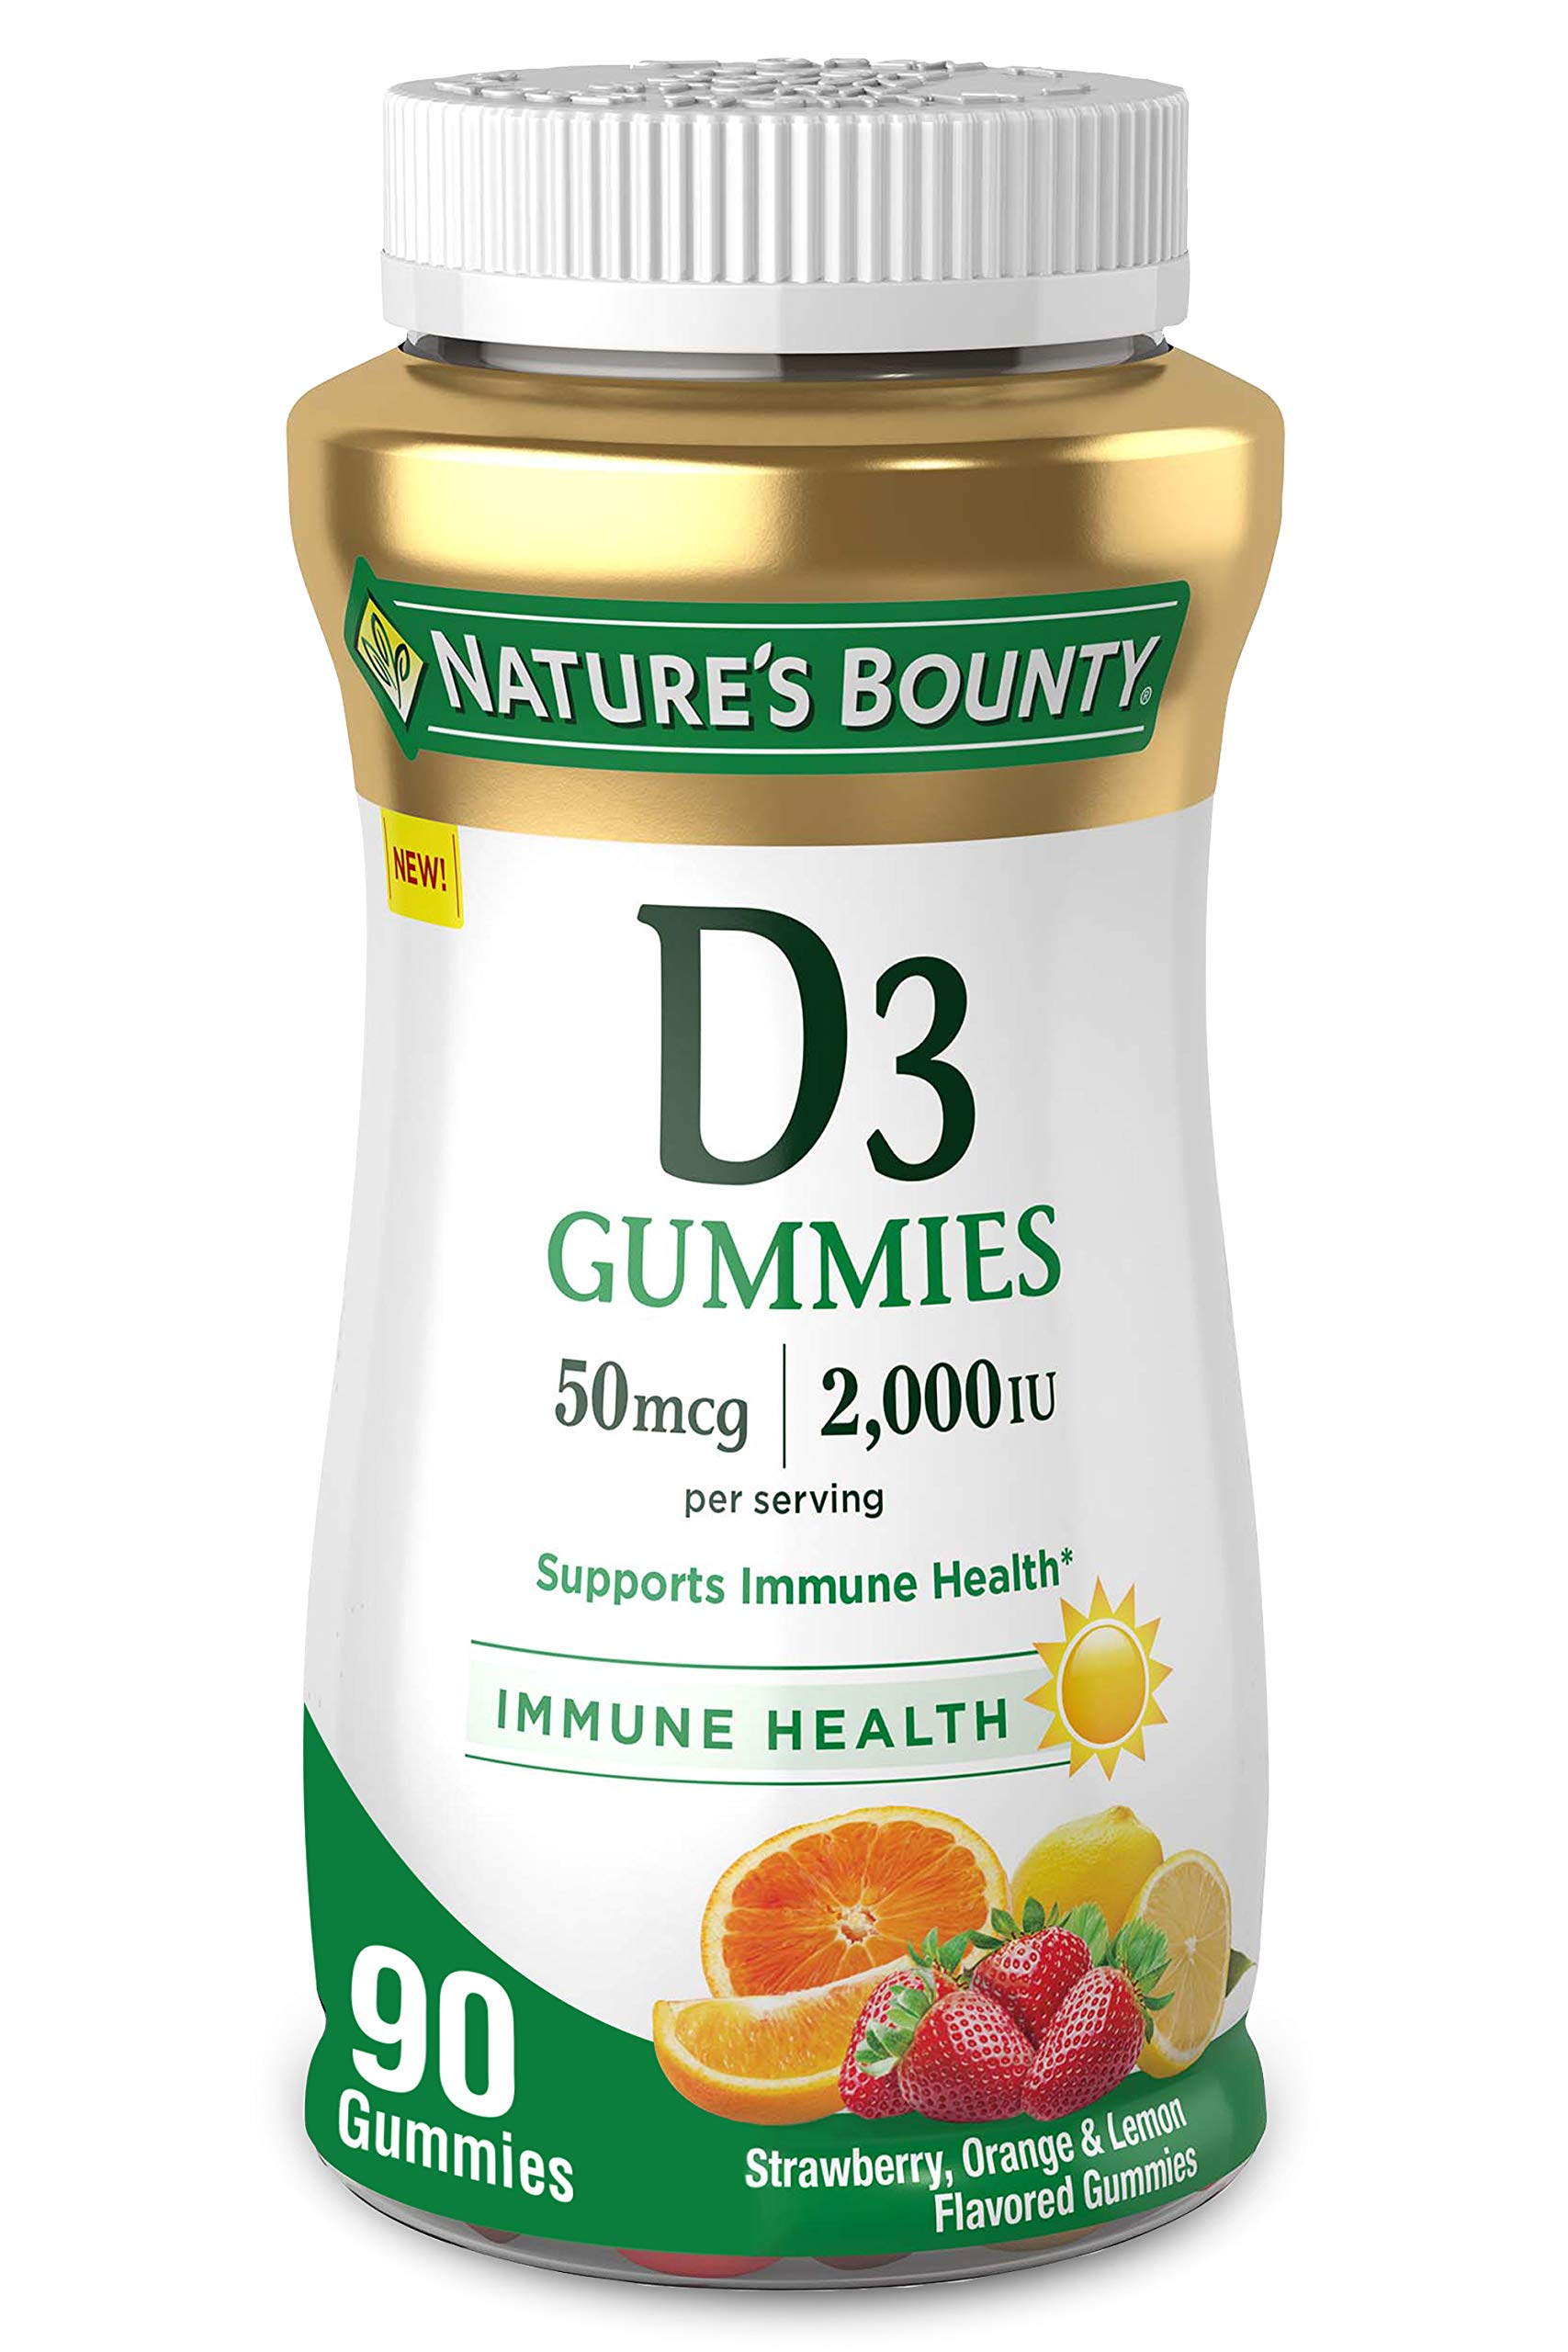 Vitamin D3 Gummies by Nature's Bounty, Vitamin Supplement, Supports Immune Health, 50mcg, 2000IU, Mixed Fruit Flavor, 90 Gummies